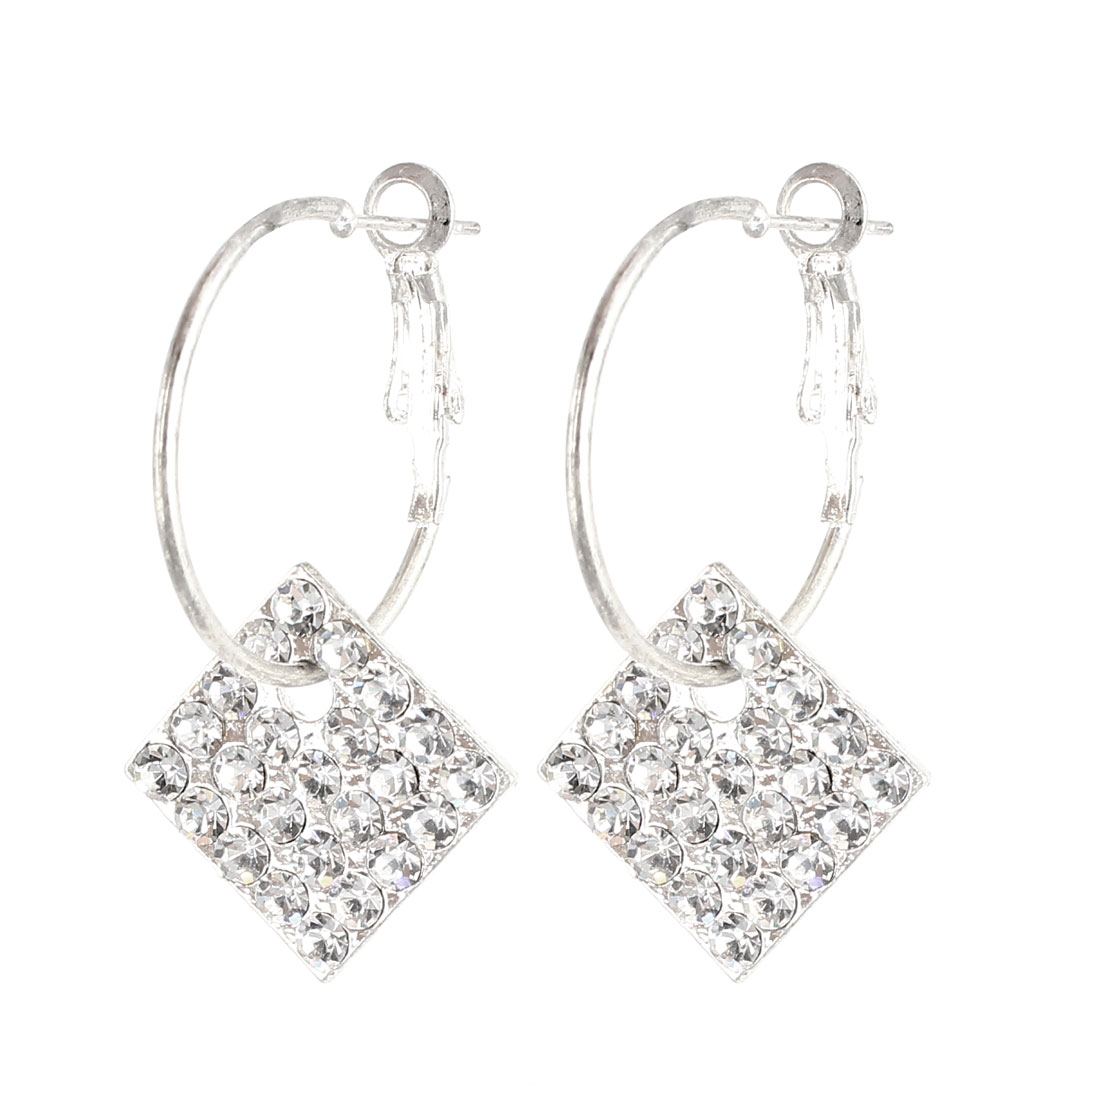 Lady Metal Faux Rhinestone Detailing French Clip Earrings Earbob Eardrop